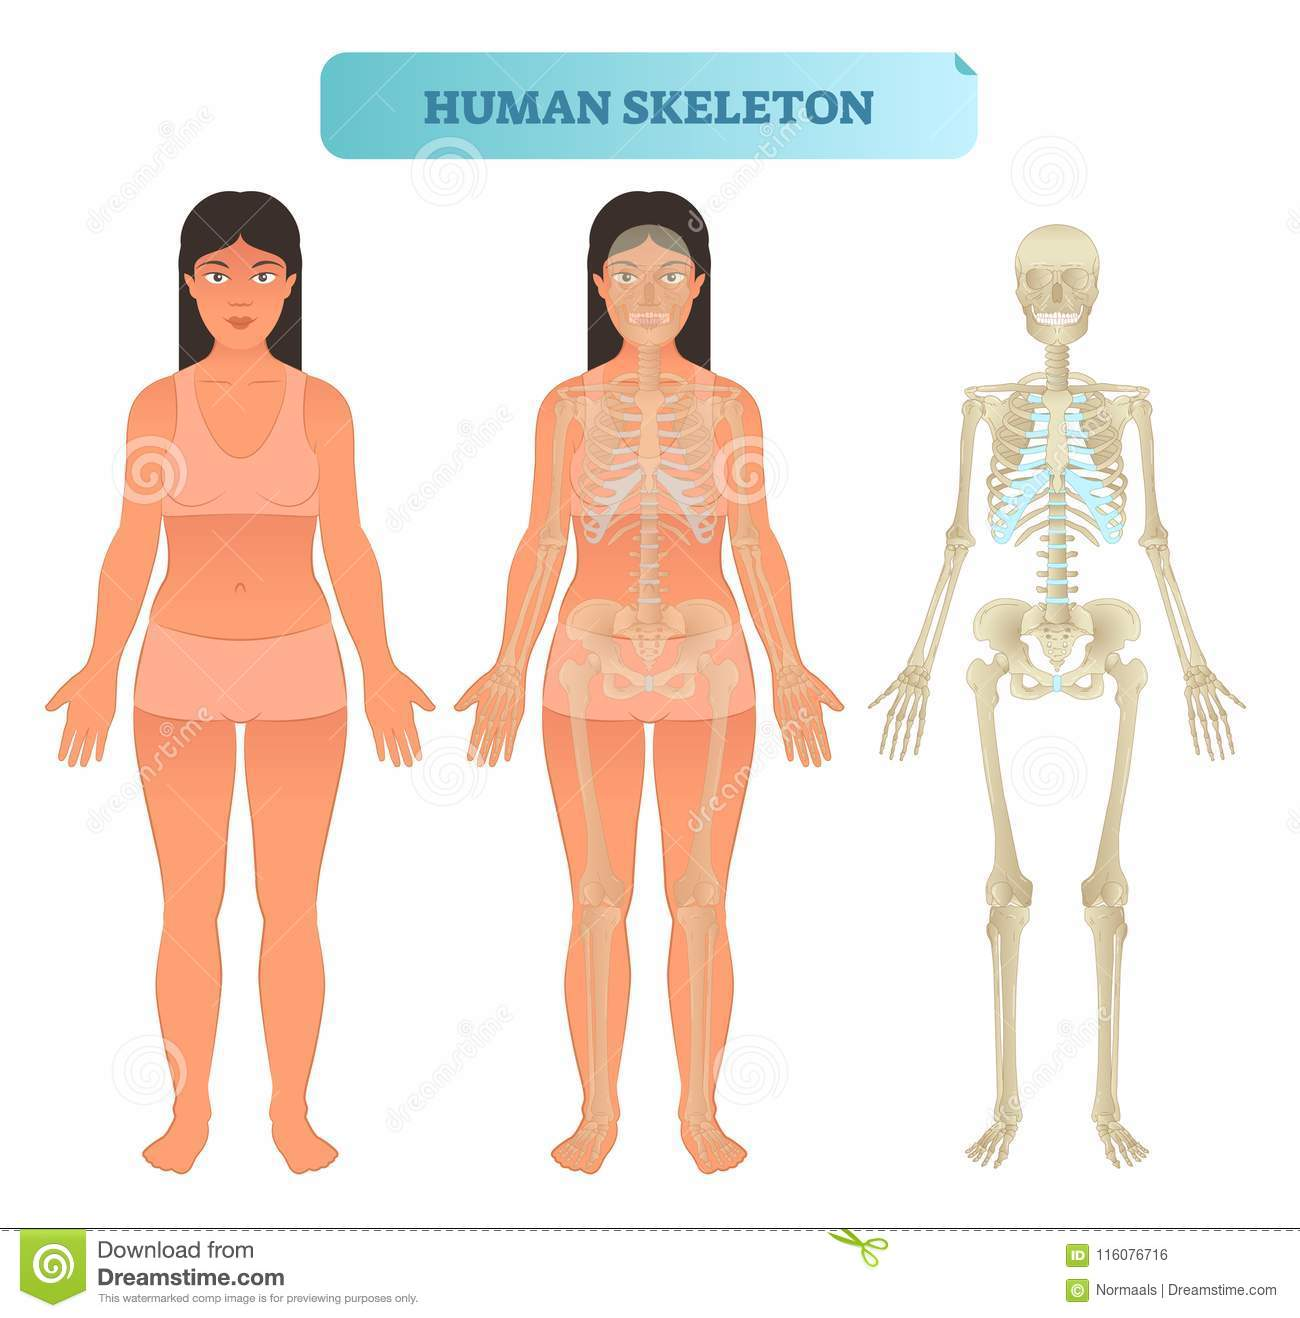 Human Skeletal System Anatomical Model Medical Vector Illustration